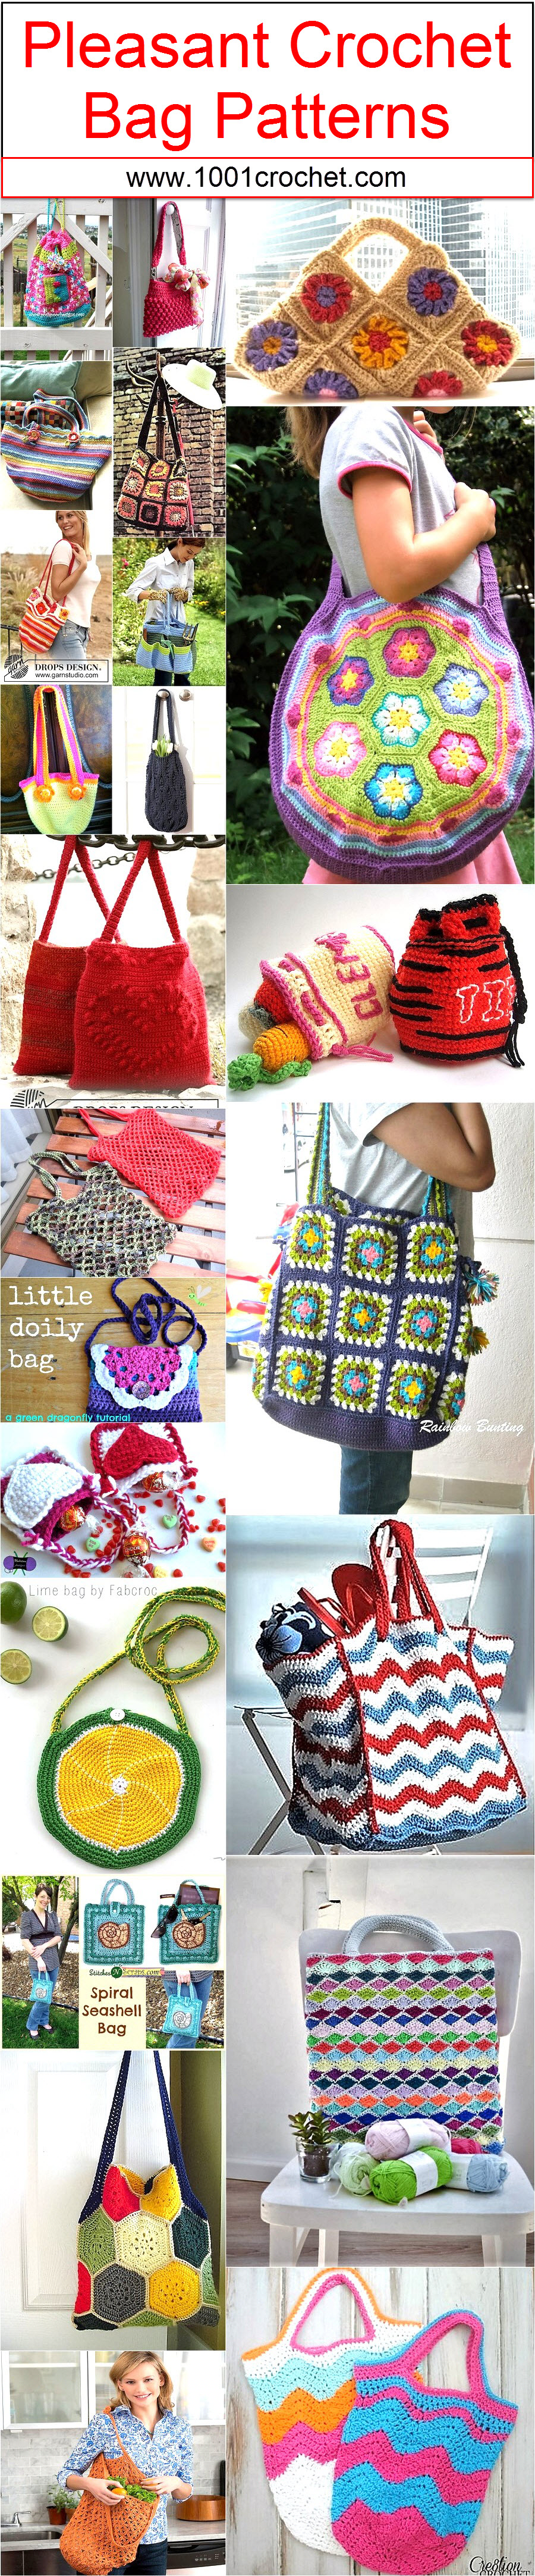 pleasant-crochet-bag-patterns